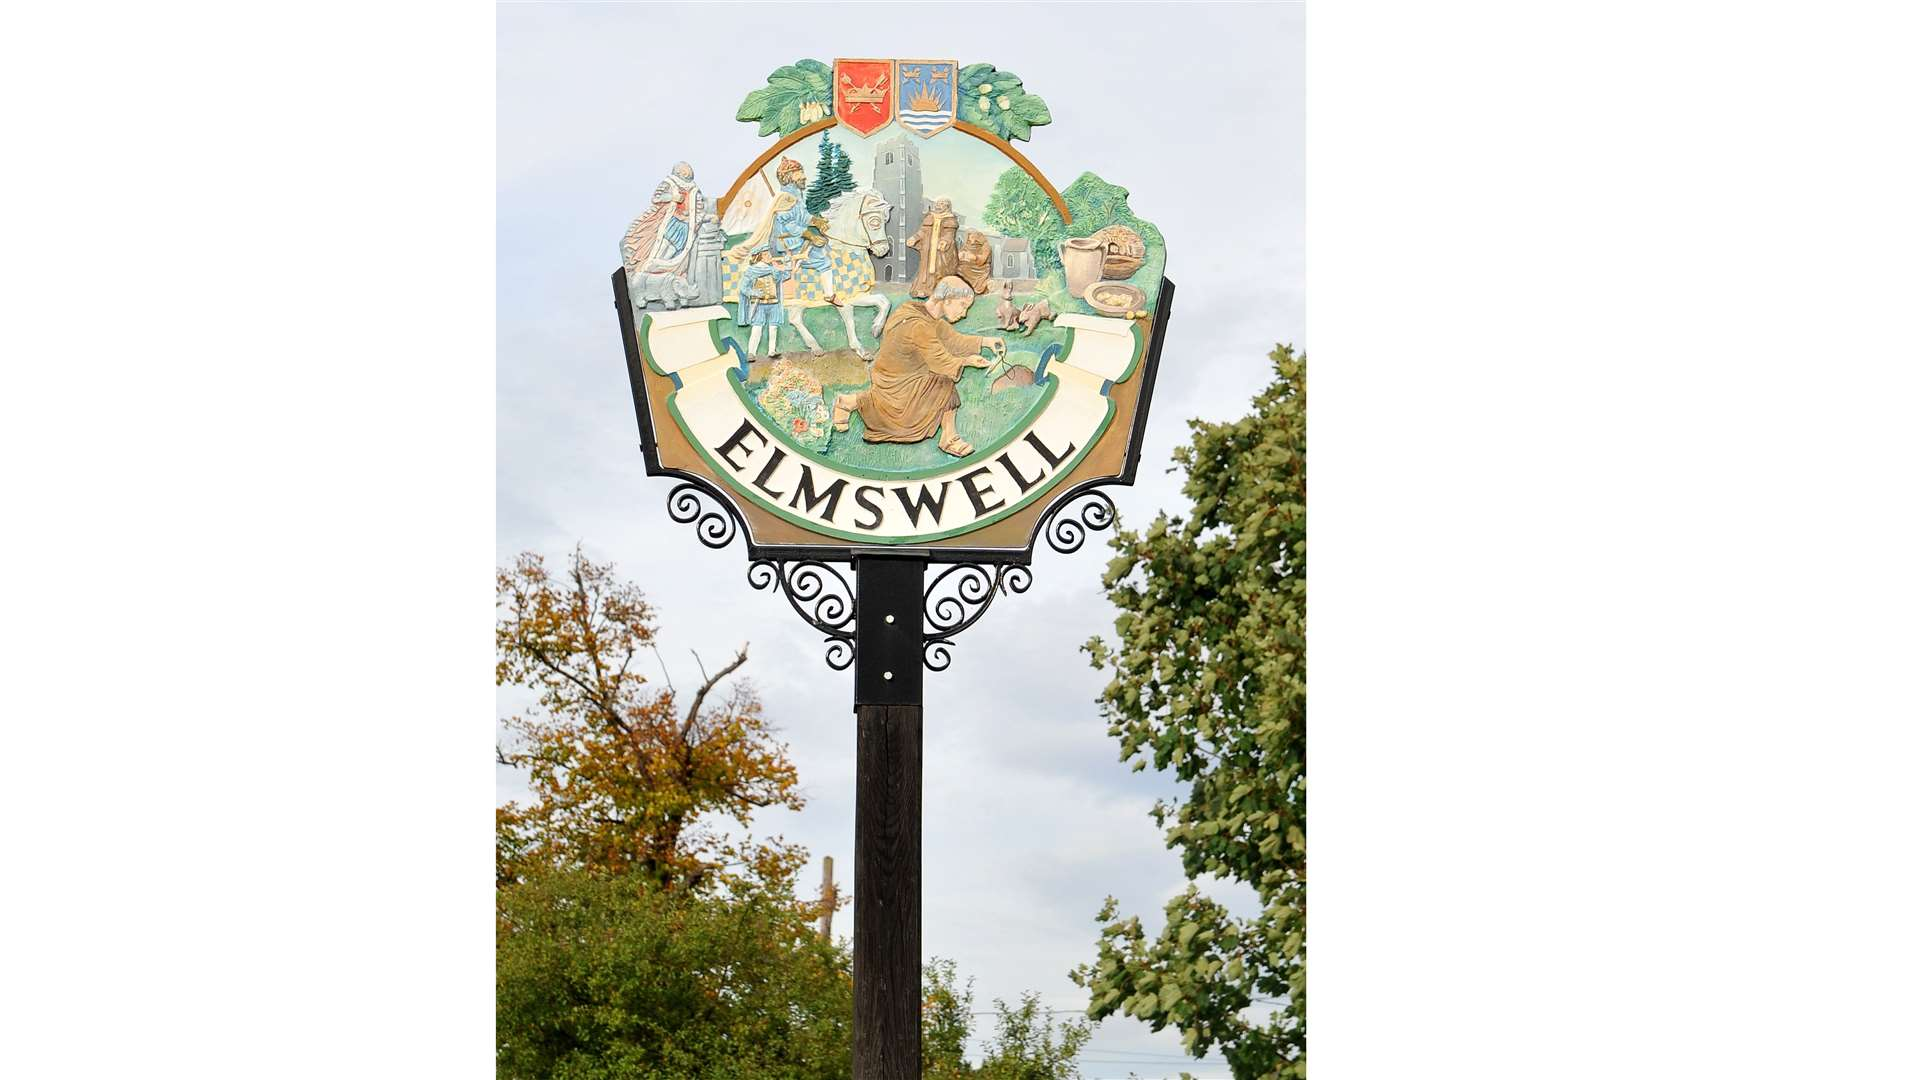 Elmswell village sign. (34923062)